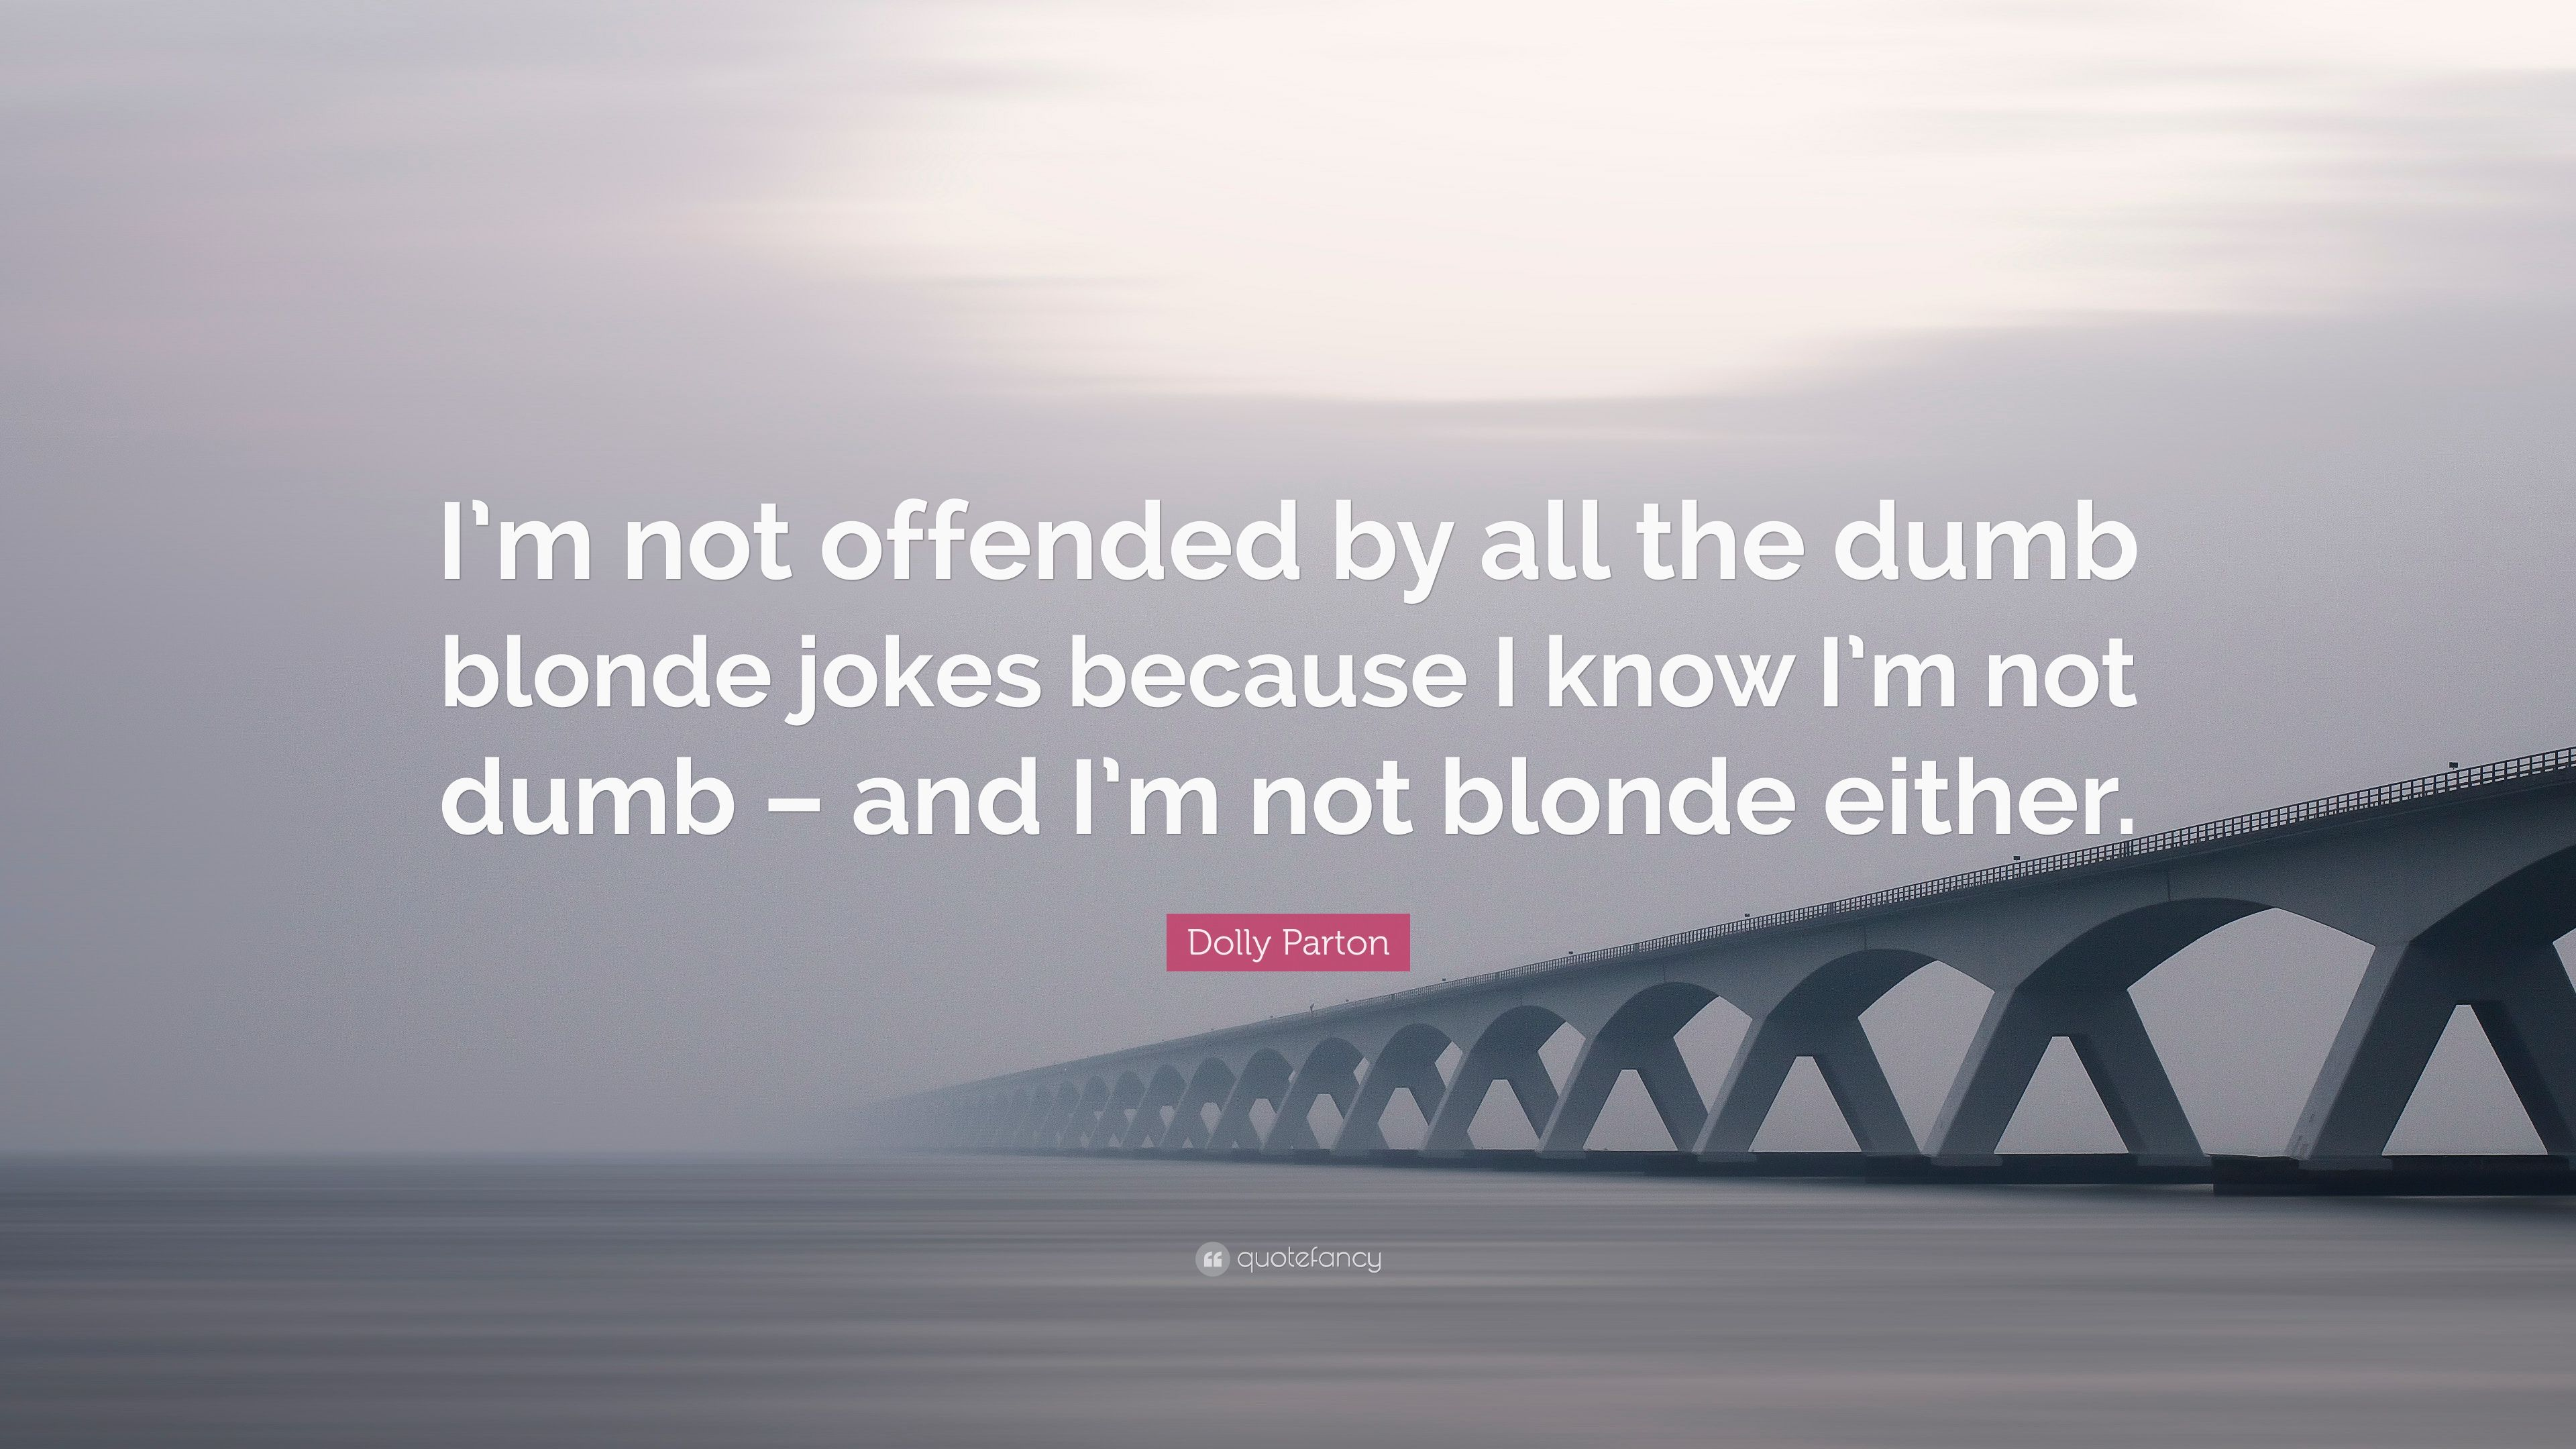 Dolly Parton Quote im Not Offended By All The Dumb Blonde Jokes Quotefancy Dolly Parton Quote im Not Offended By All The Dumb Blonde Jokes